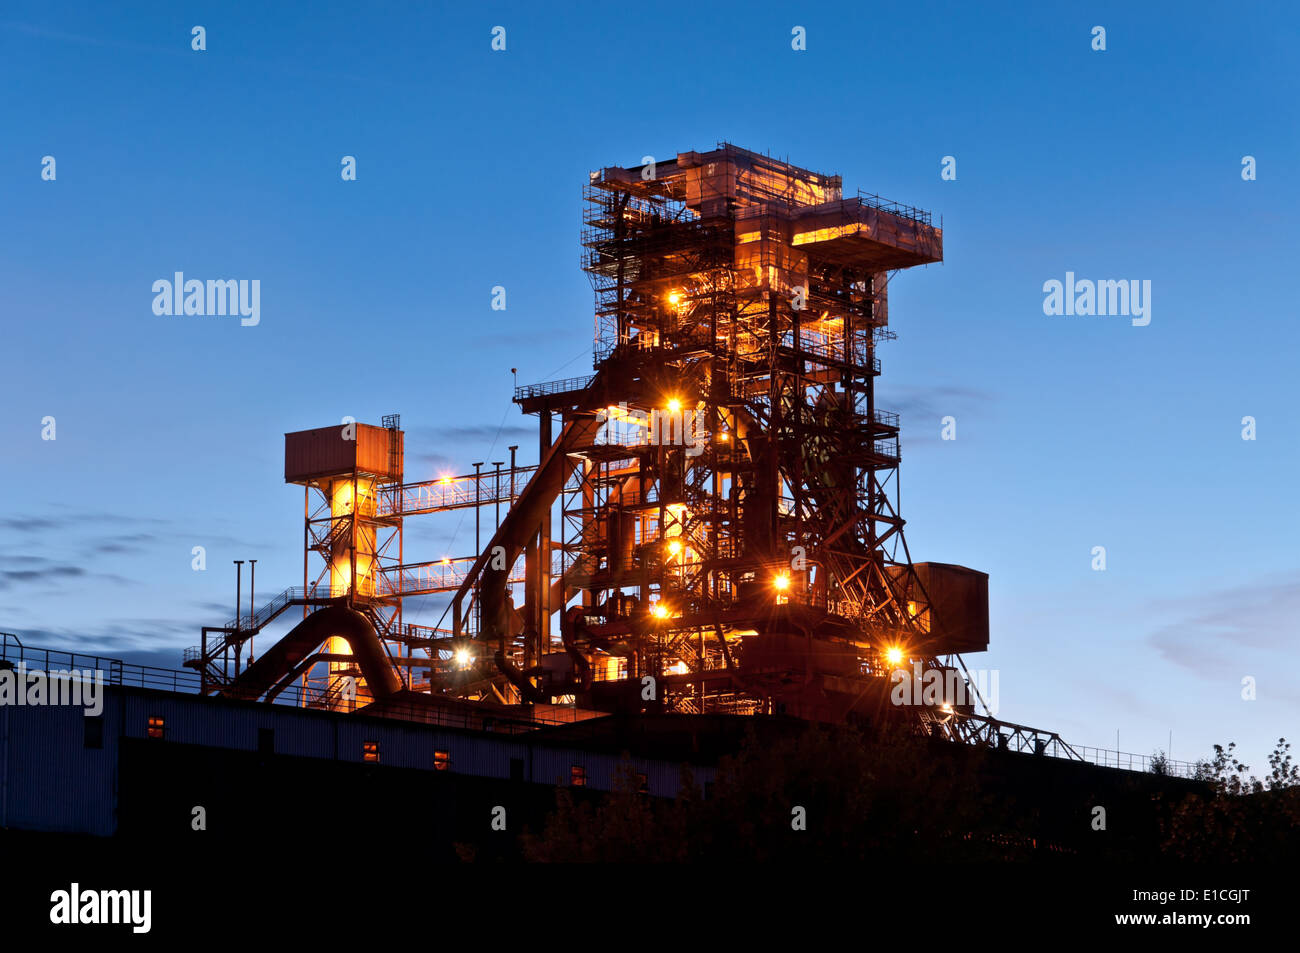 Lighted blast furnace at night in Germany  industrial plant blast furnace - Stock Image